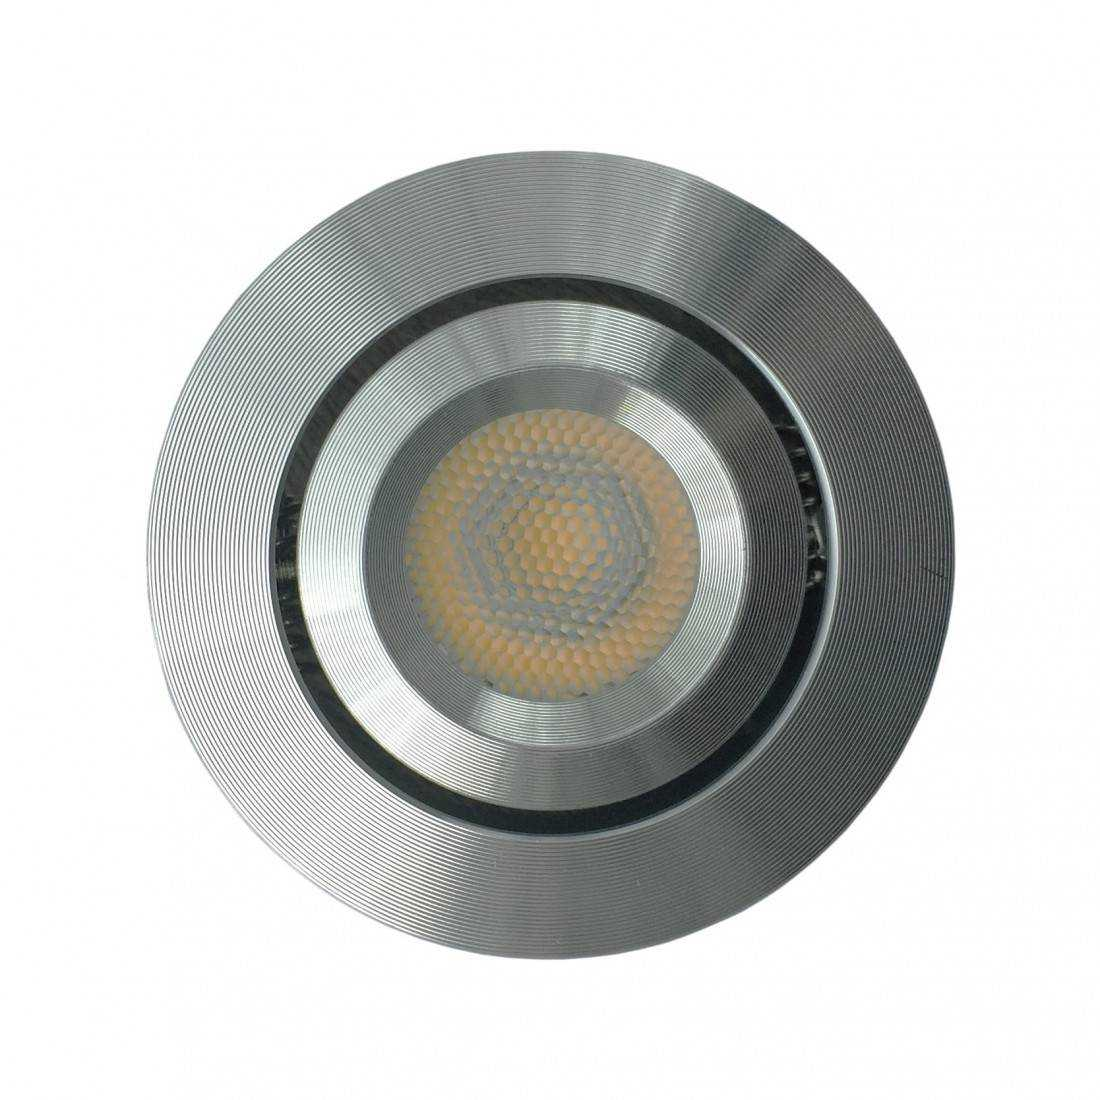 Mini spot led encastrable 3w 230v for Spot exterieur encastrable plafond